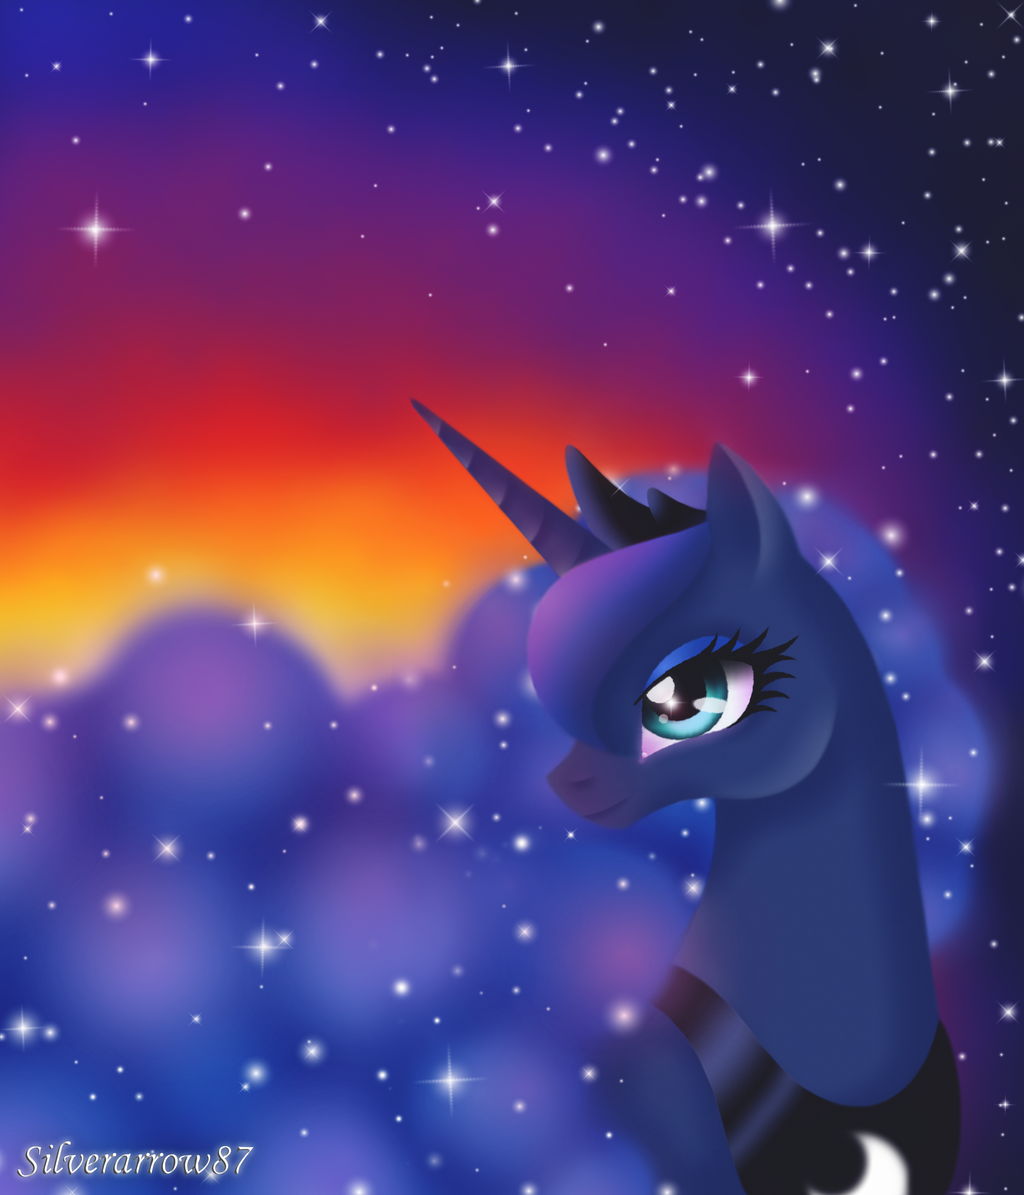 Luna's sunrise by Silverarrow87